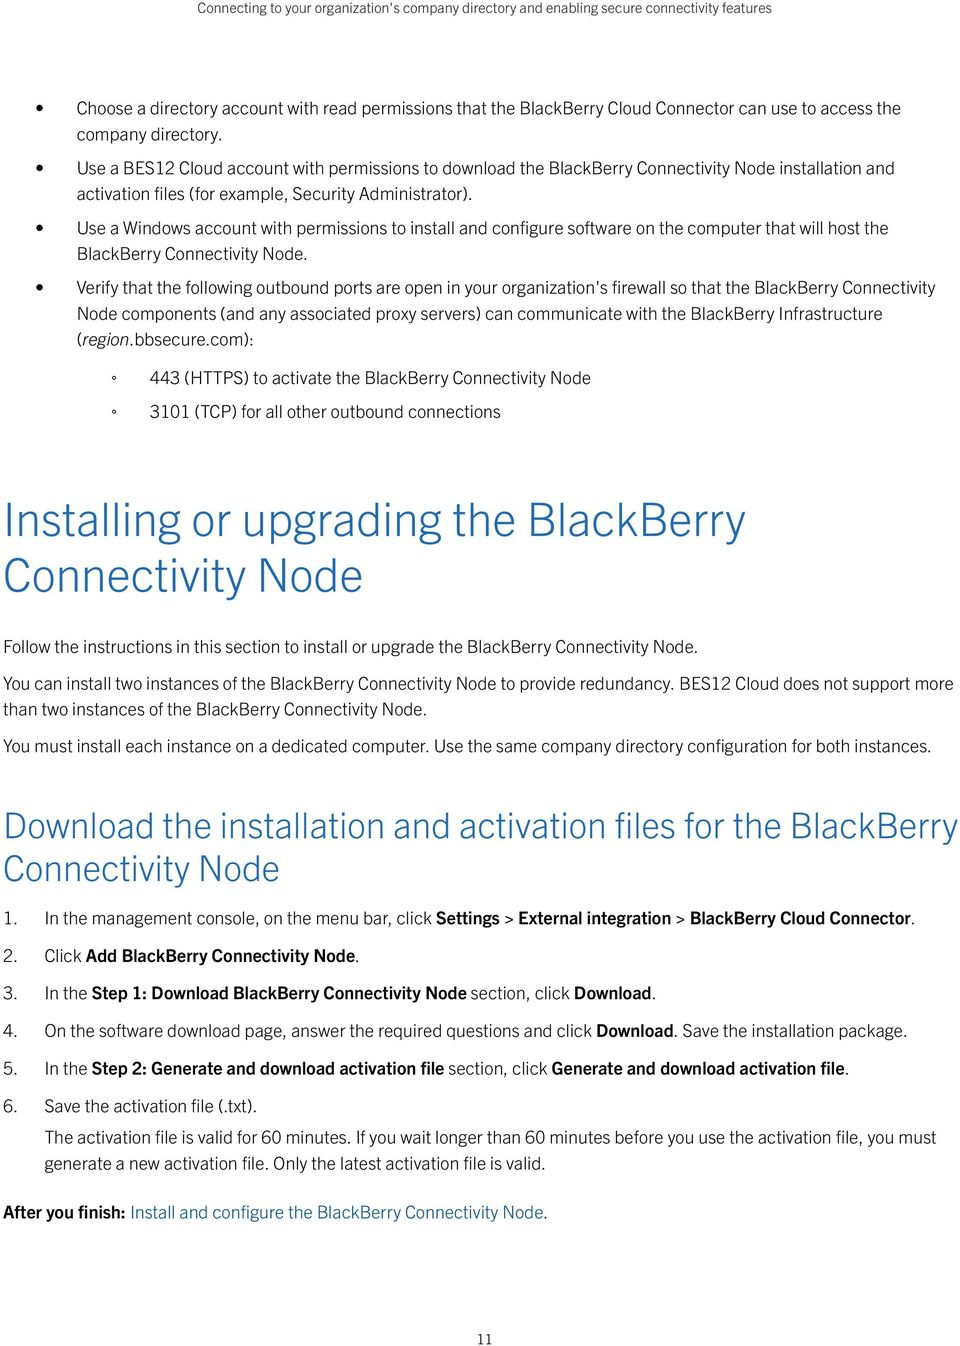 Use a Windows account with permissions to install and configure software on the computer that will host the BlackBerry Connectivity Node.